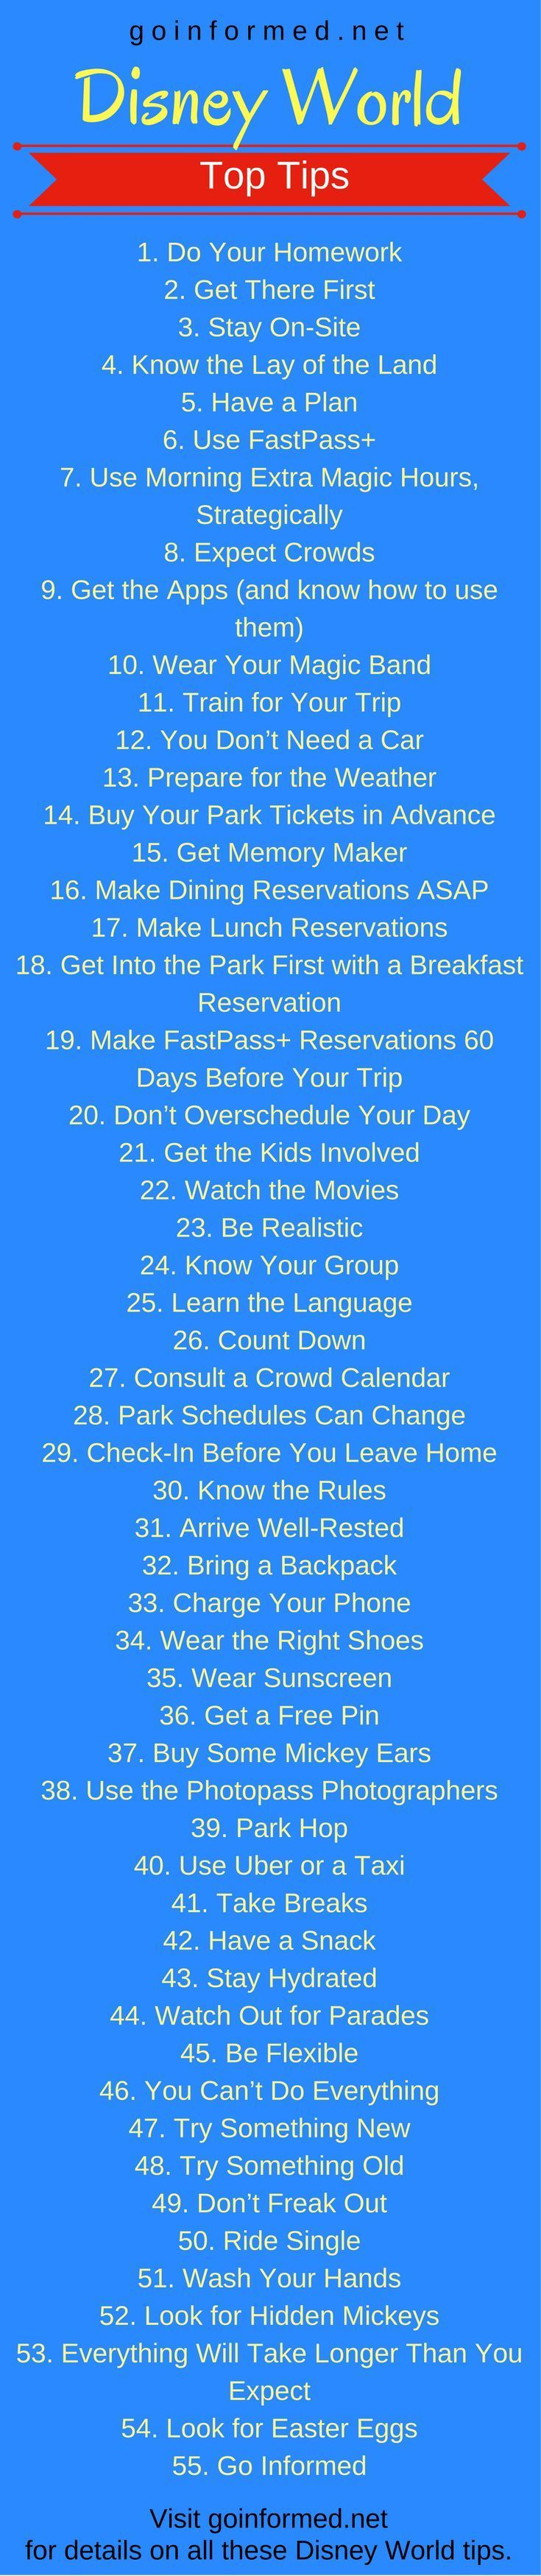 So much to learn about Disney World. 55 awesome tips to get started on Disney World plans.